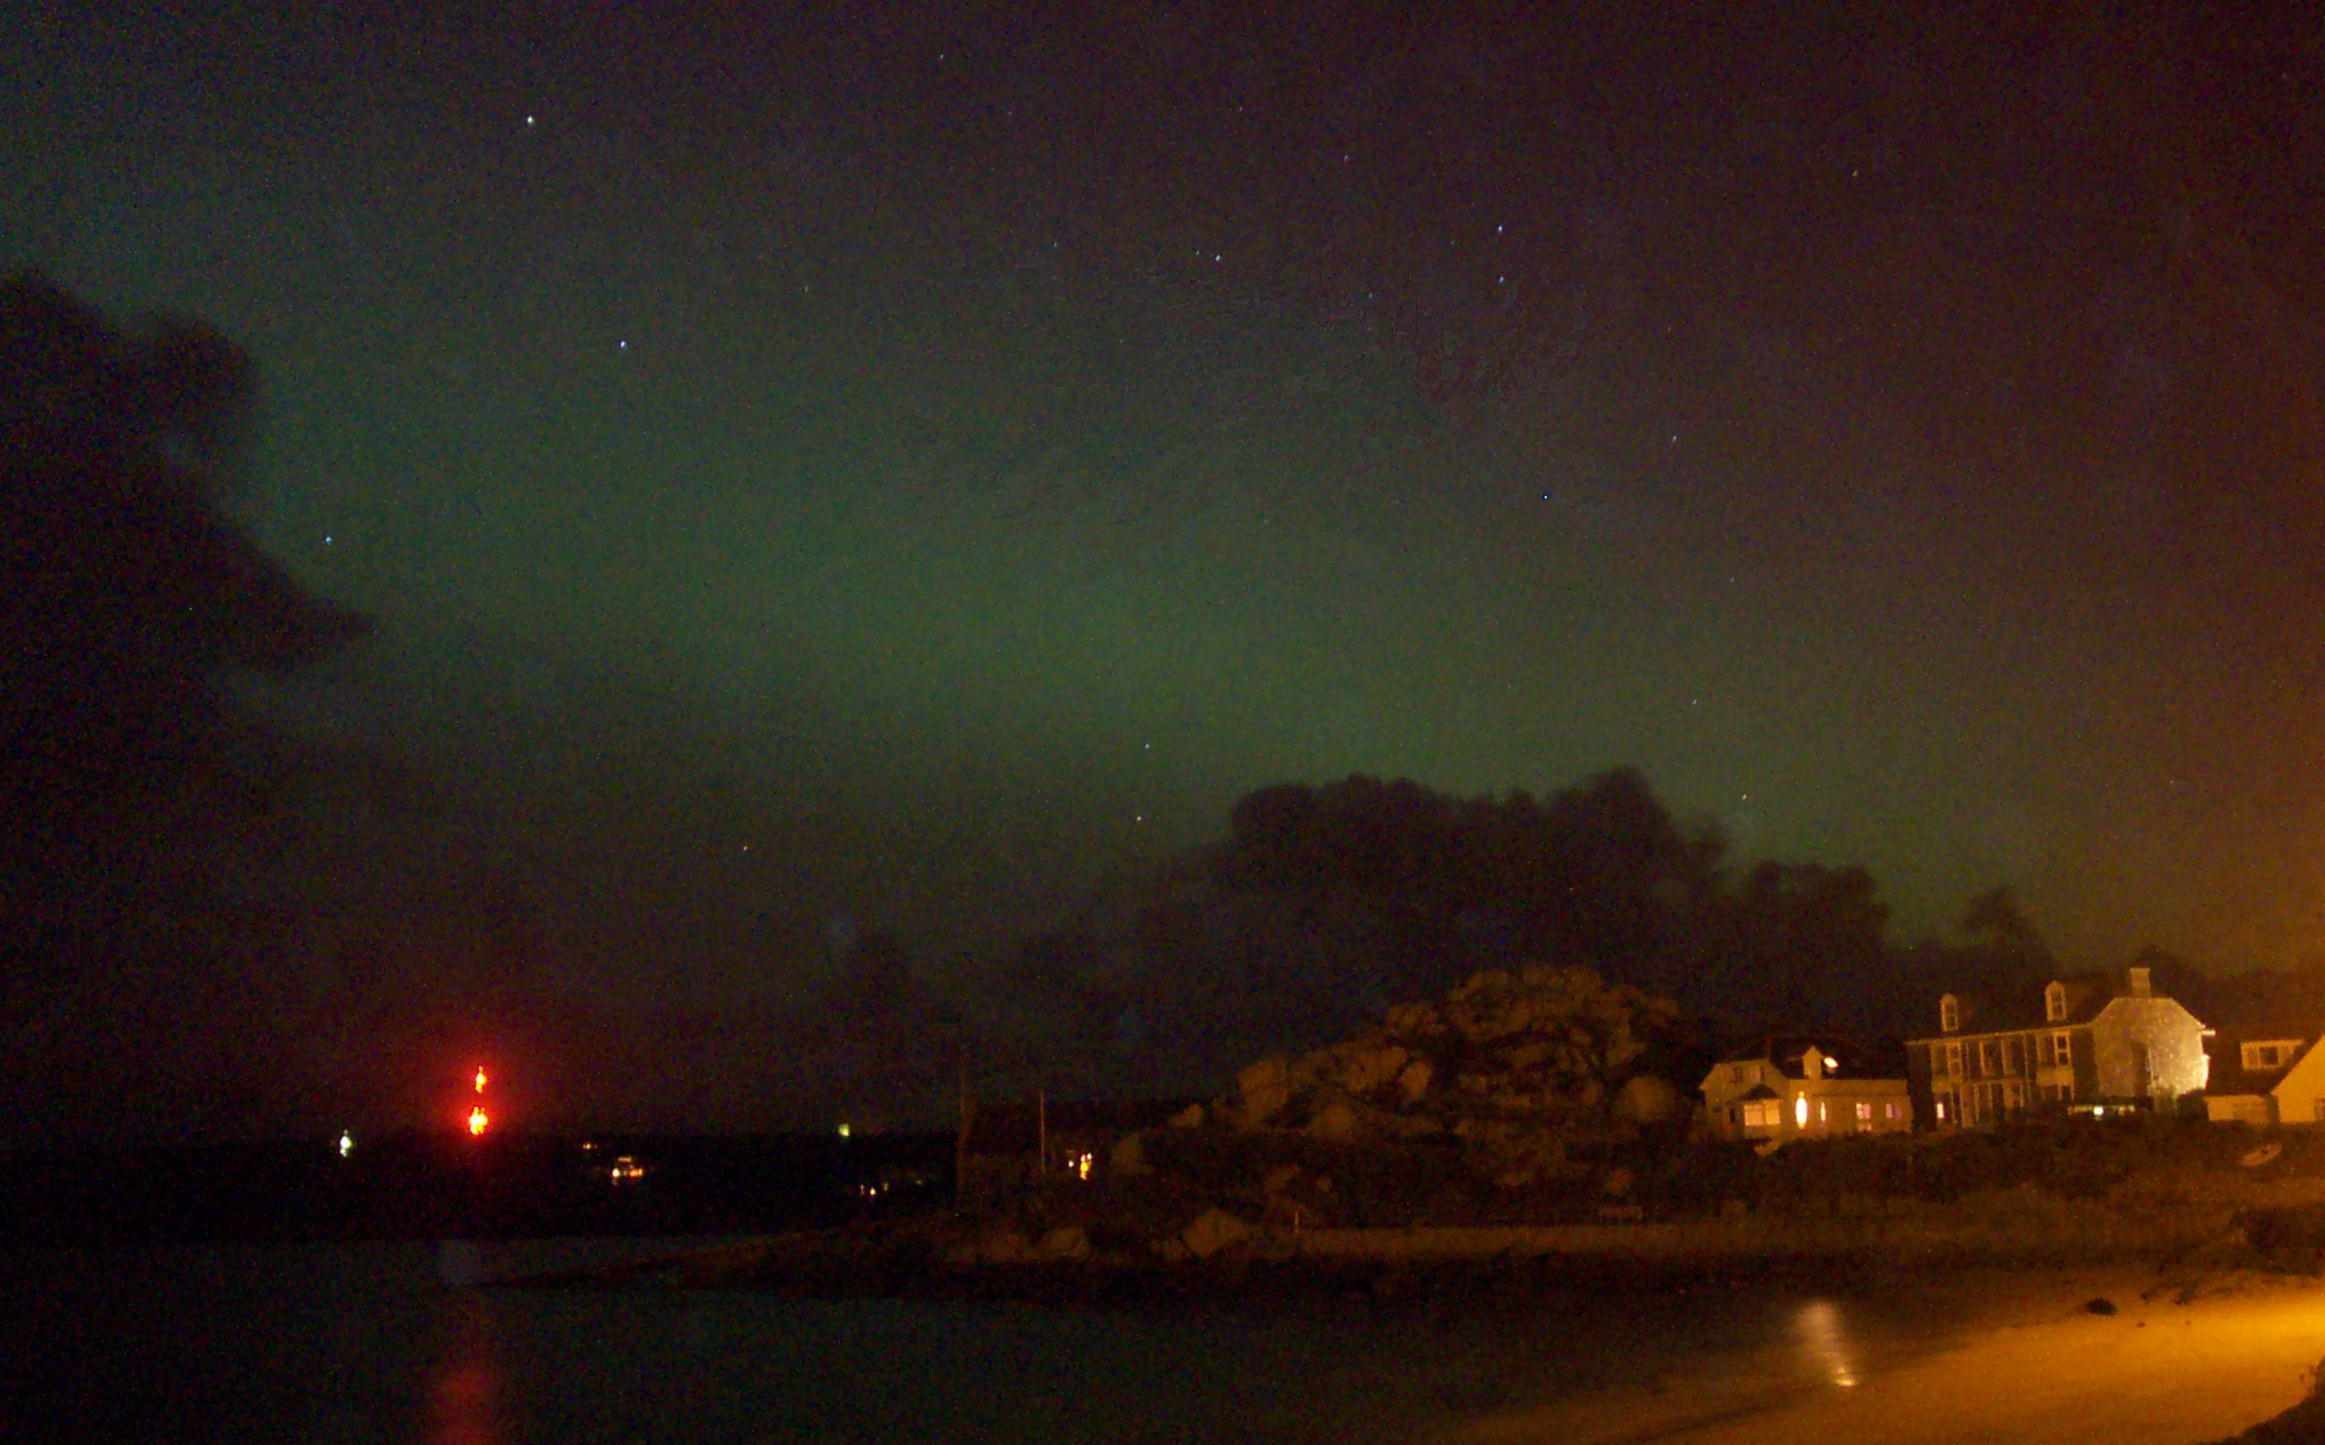 Northern Lights on Scilly - Image courtesy of Jane Hurd